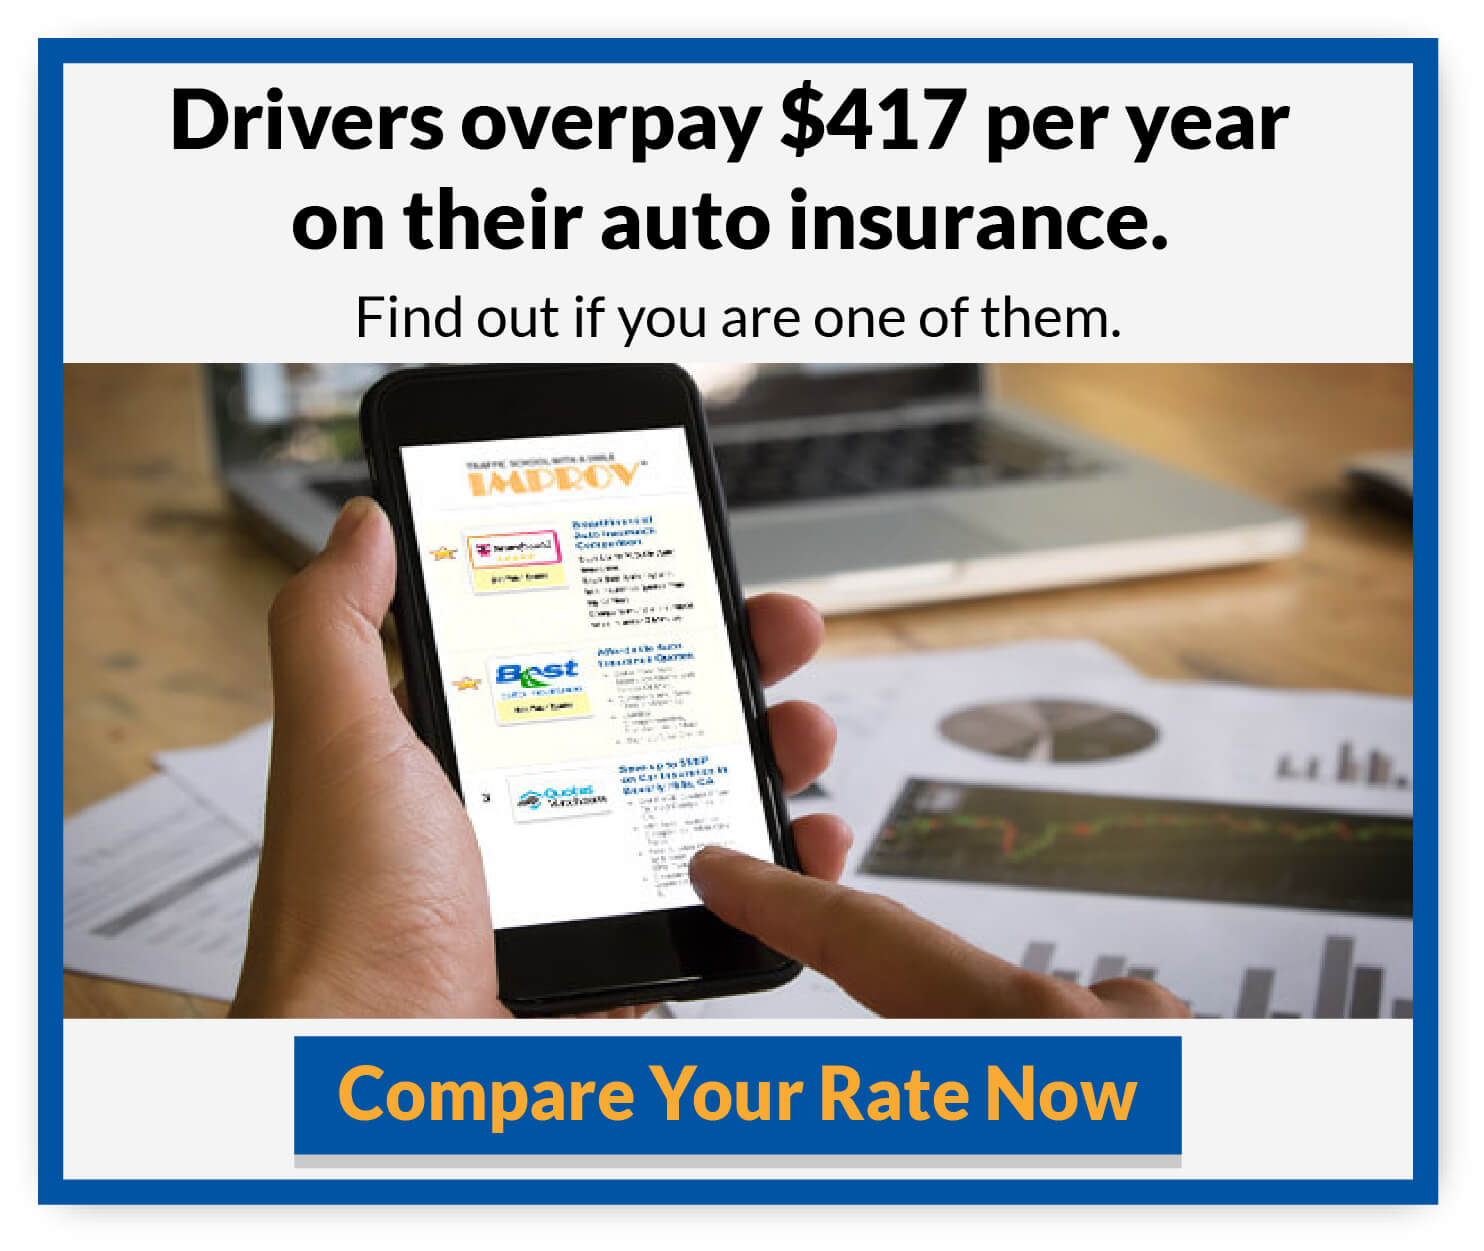 Drivers overpay on insurance rates. Compare your rate now. Click here.